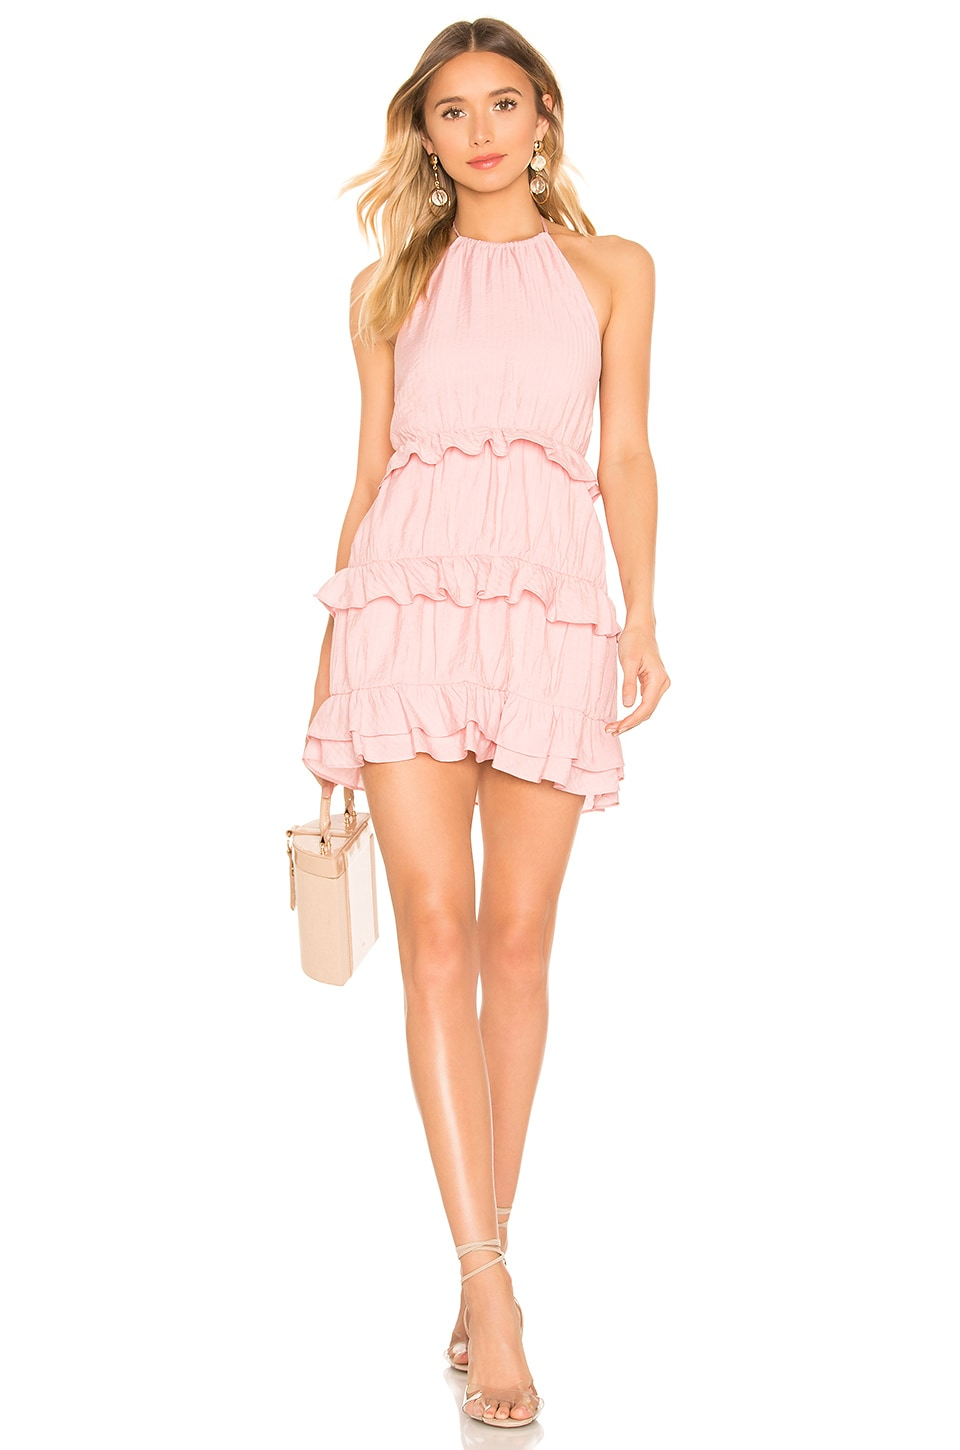 Lovers + Friends Maeve Mini Dress in Coral